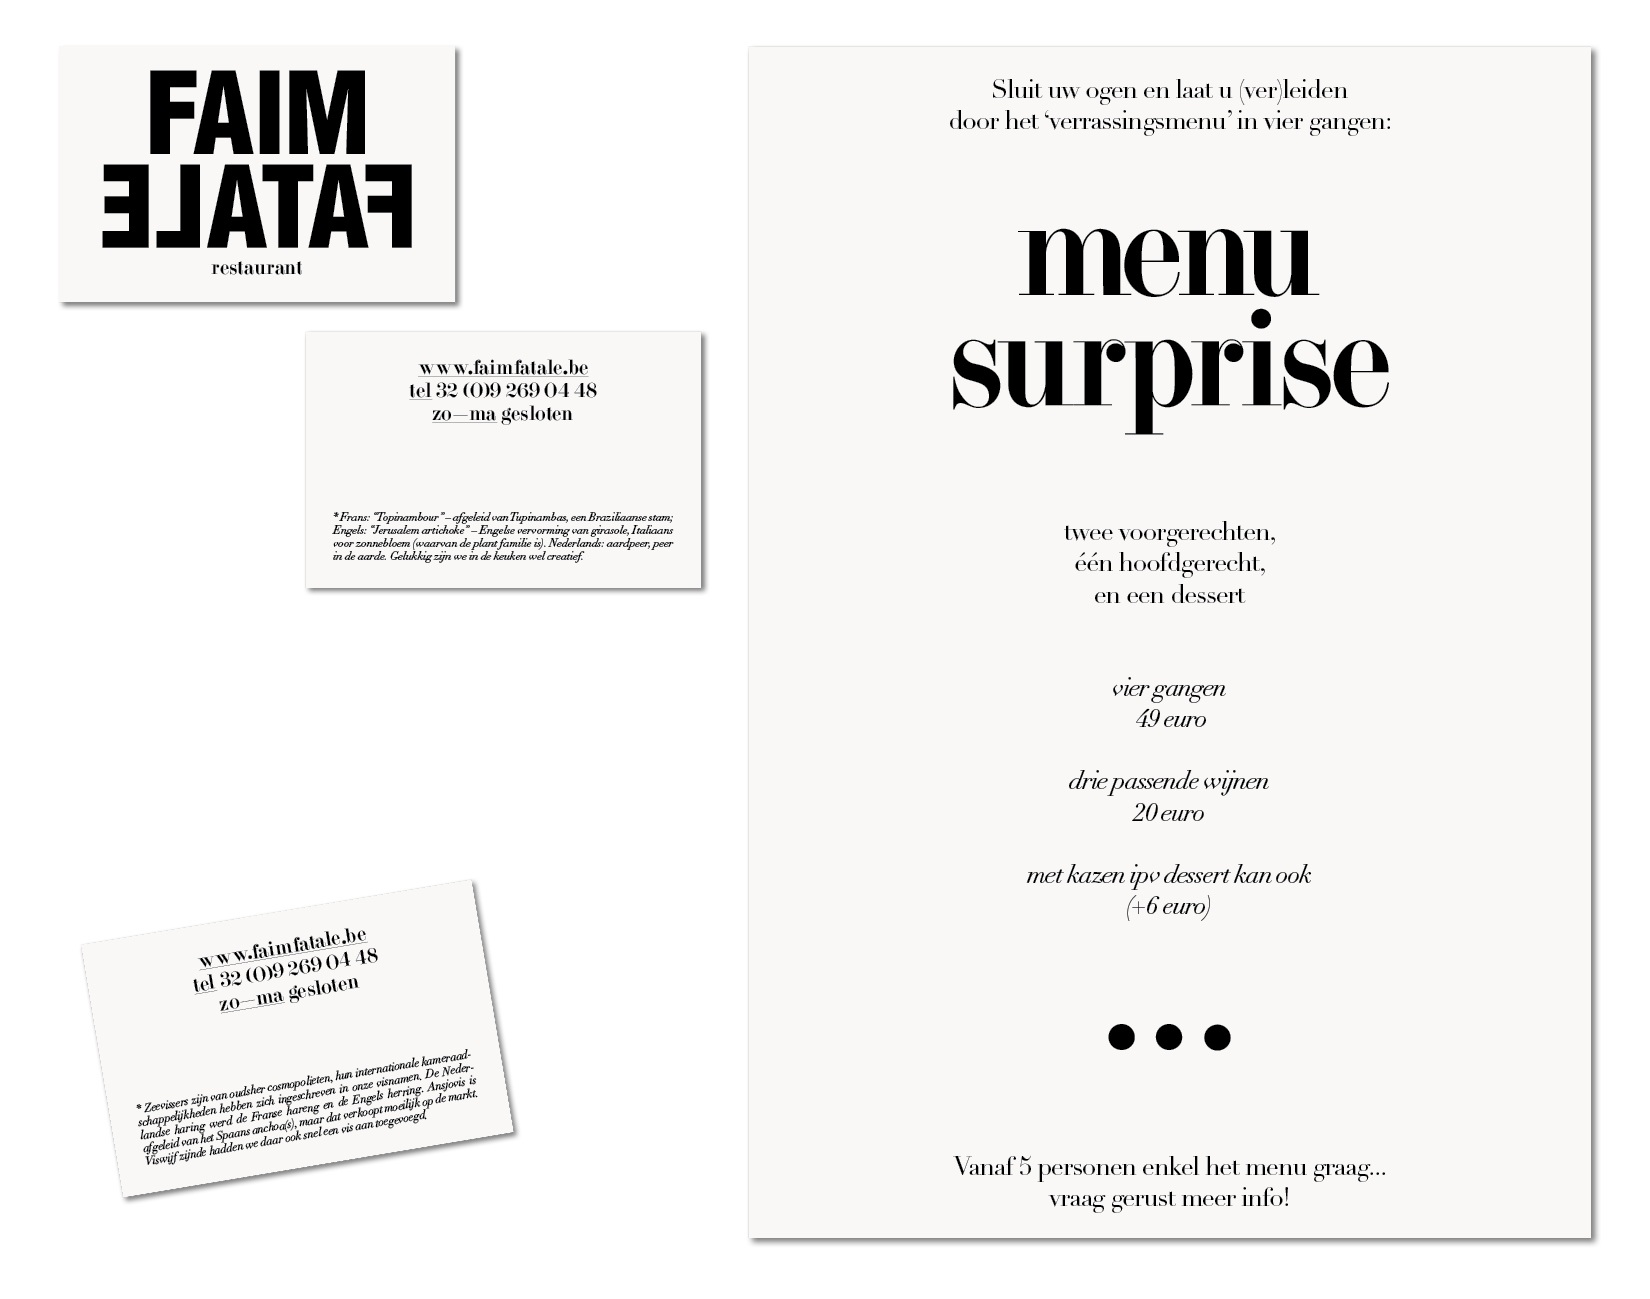 Faim Fatale menu and businesscard design Lauren Grusenmeyer